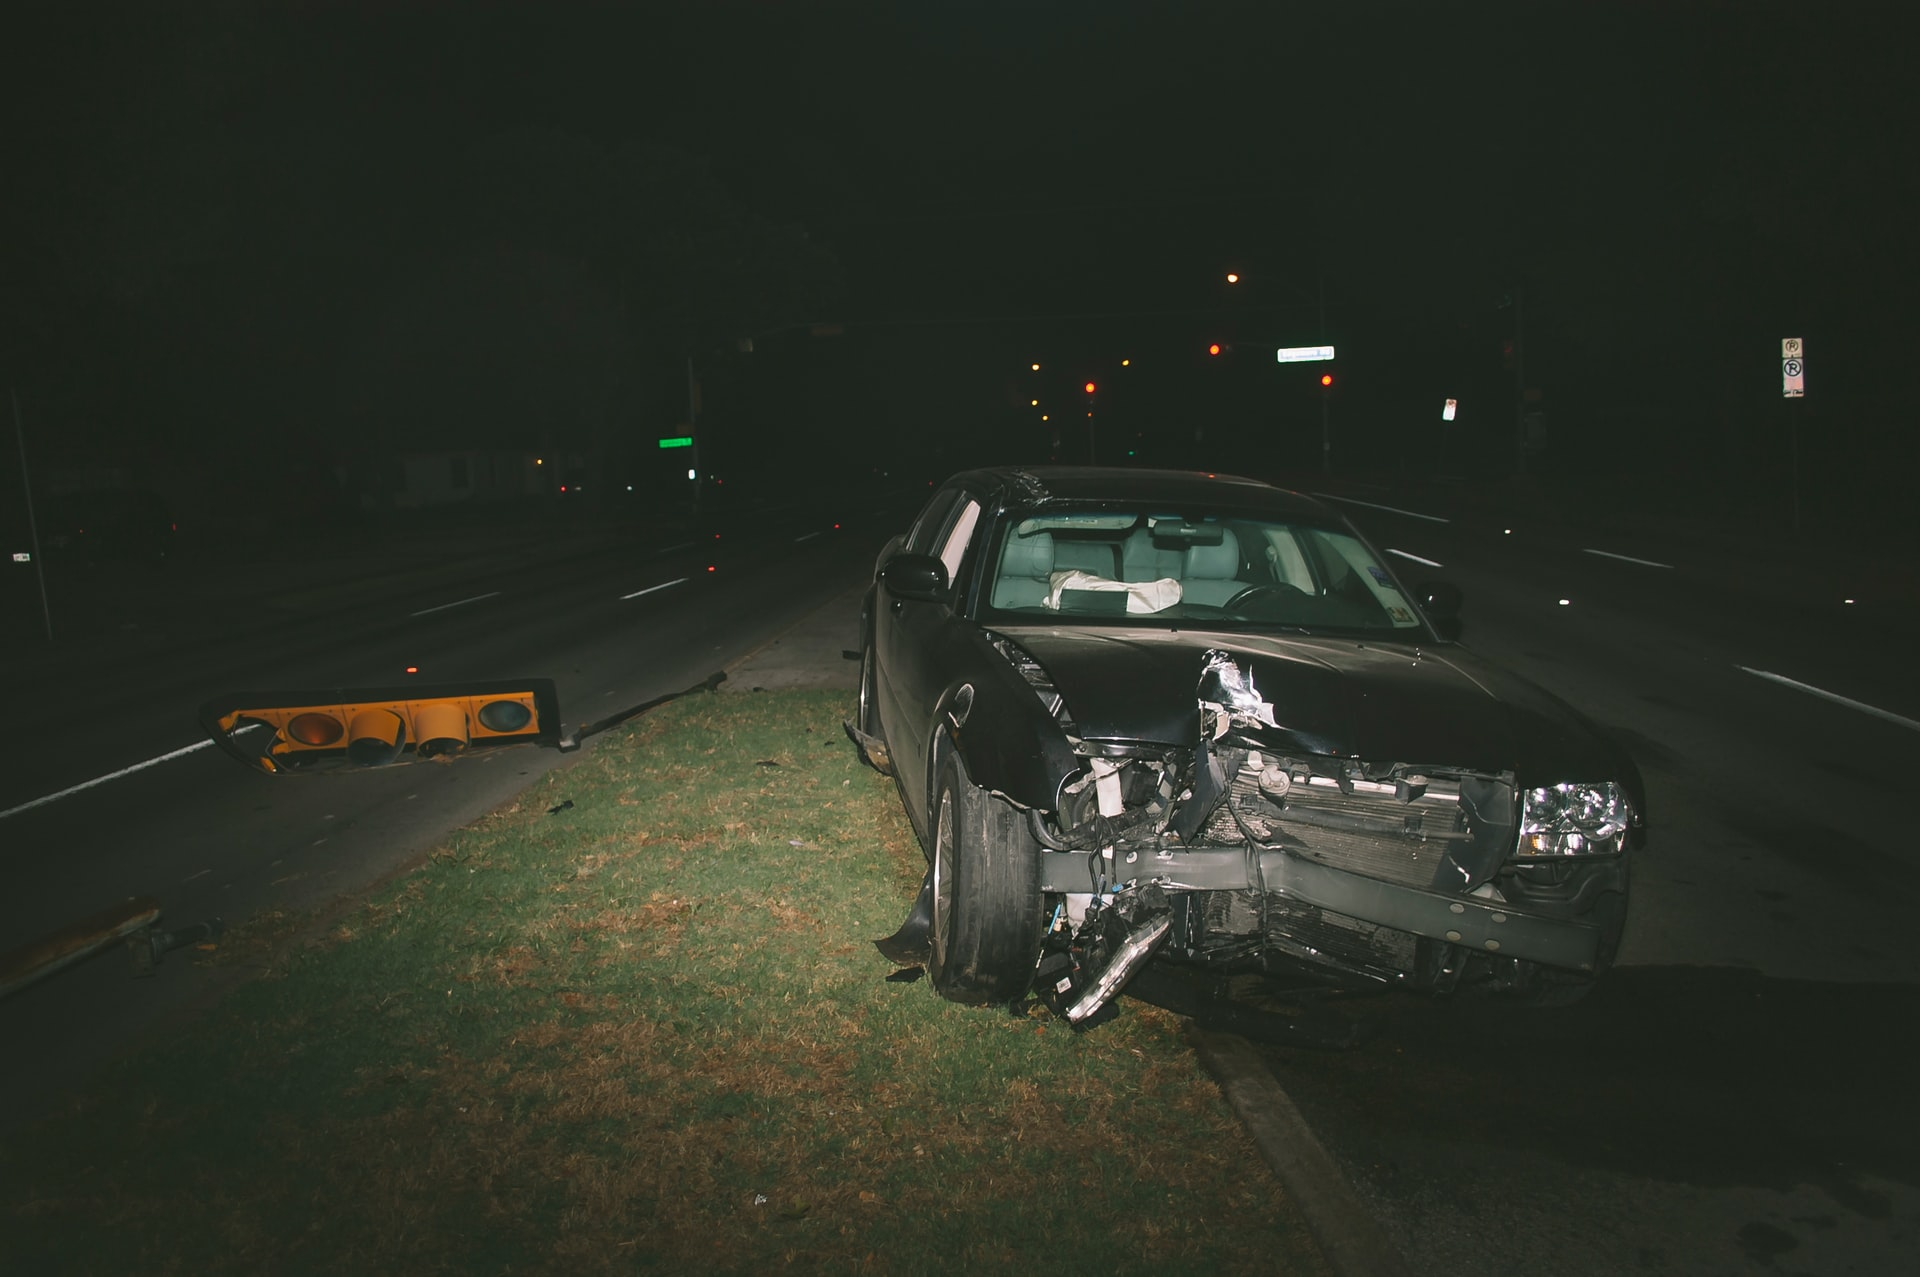 How Dangerous are Car Accidents?